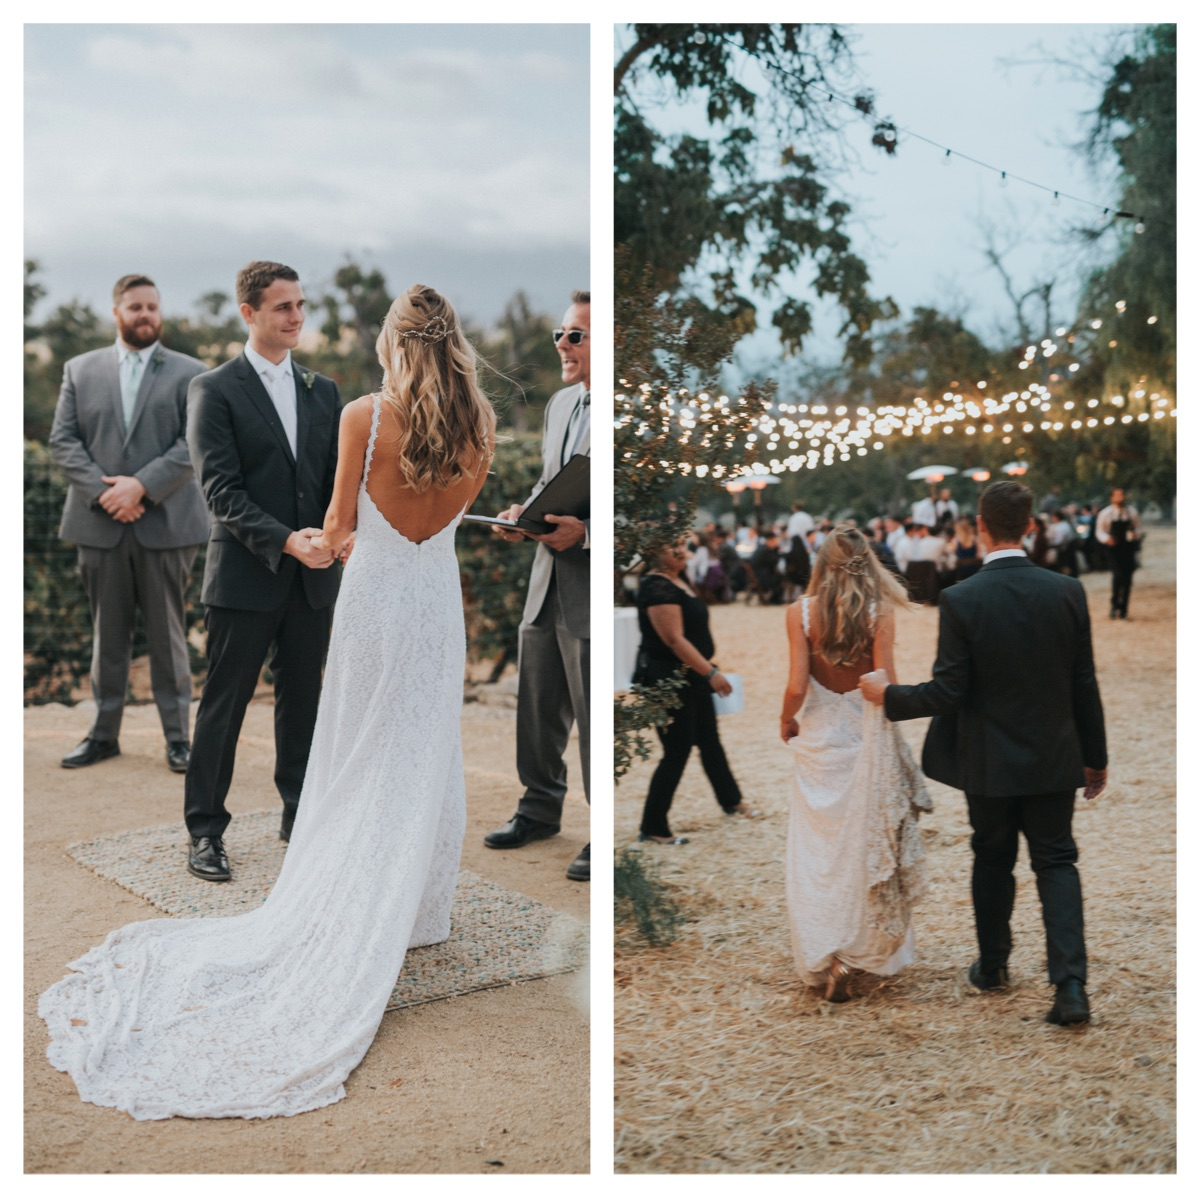 California-laidback-ranch-wedding-bride-wears-backless-lace-wimple-wedding-dress